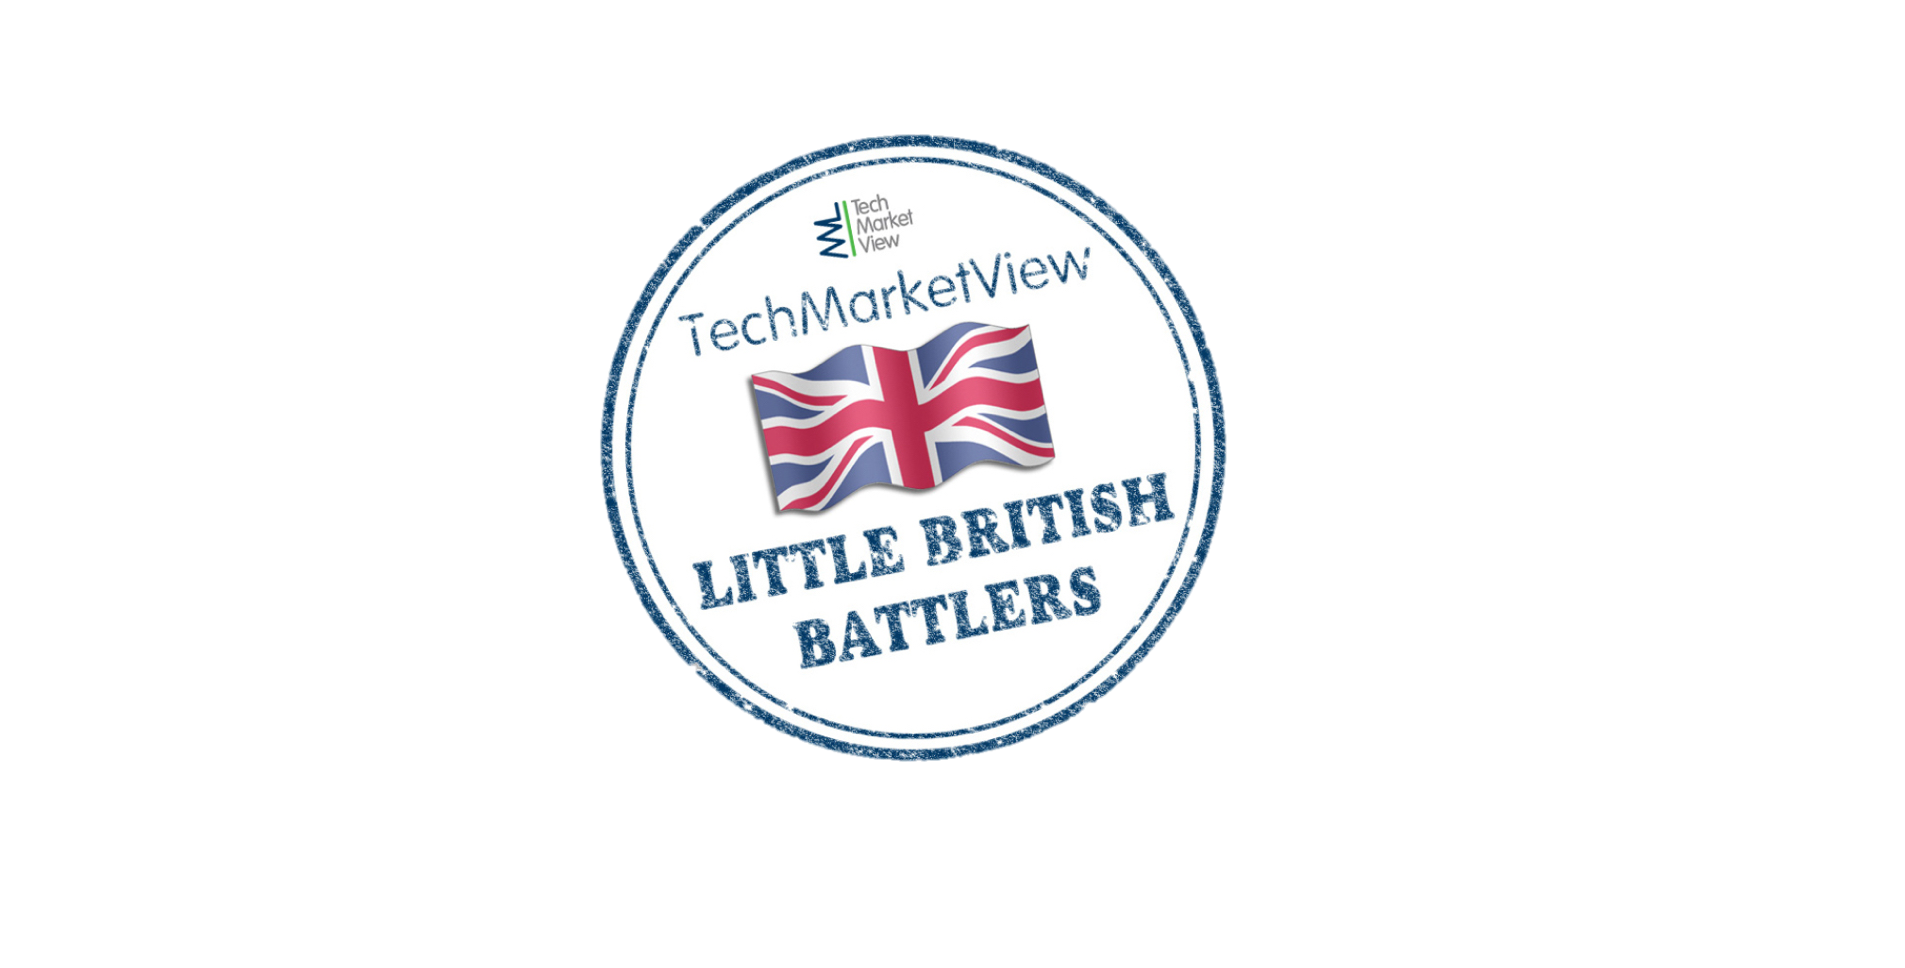 AND Digital Named as 'Little British Battler 2016' by TechMarketView